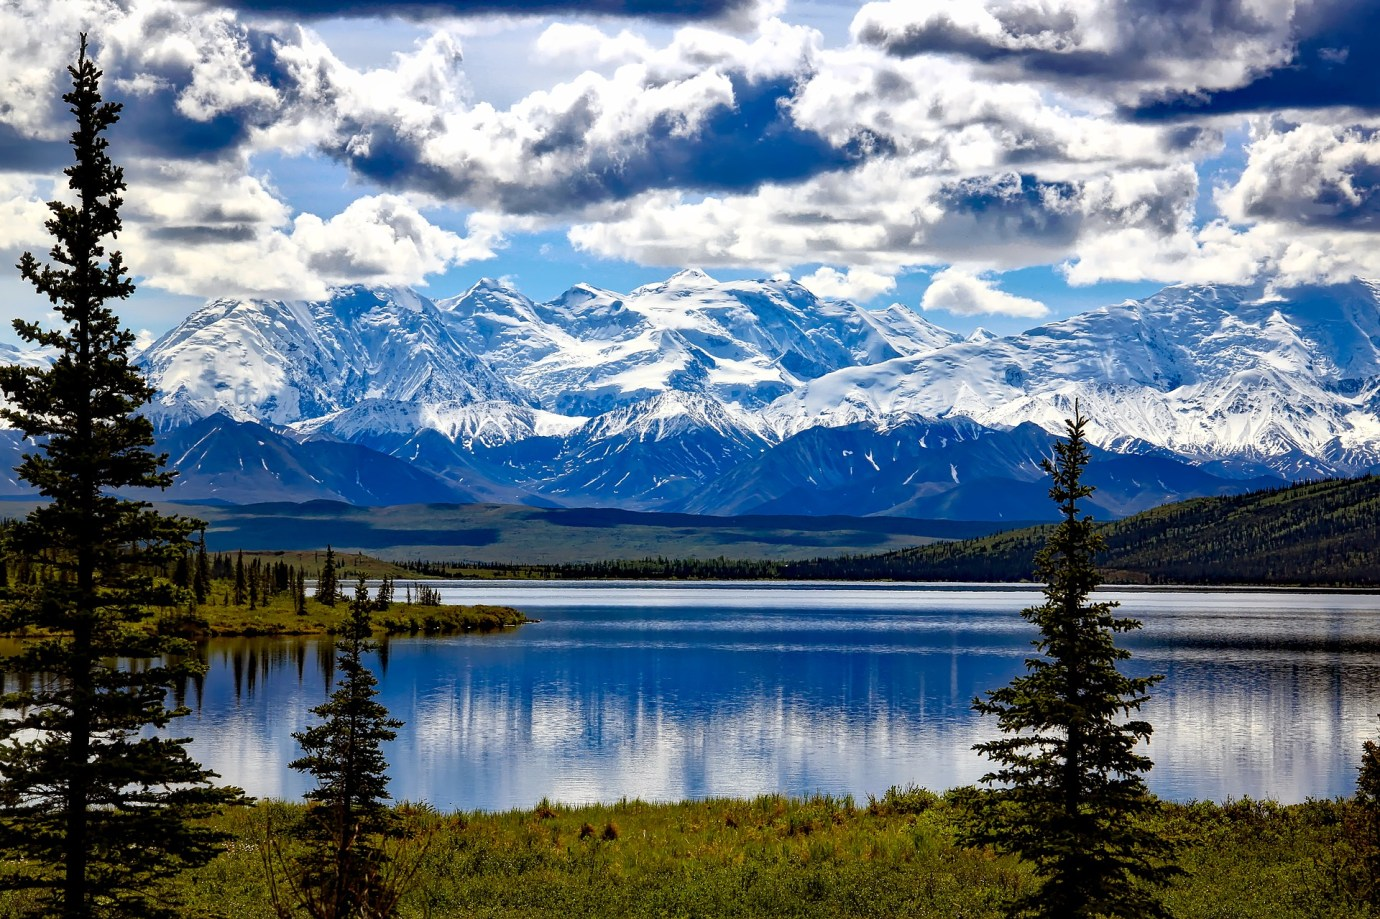 denali national park alaska usa